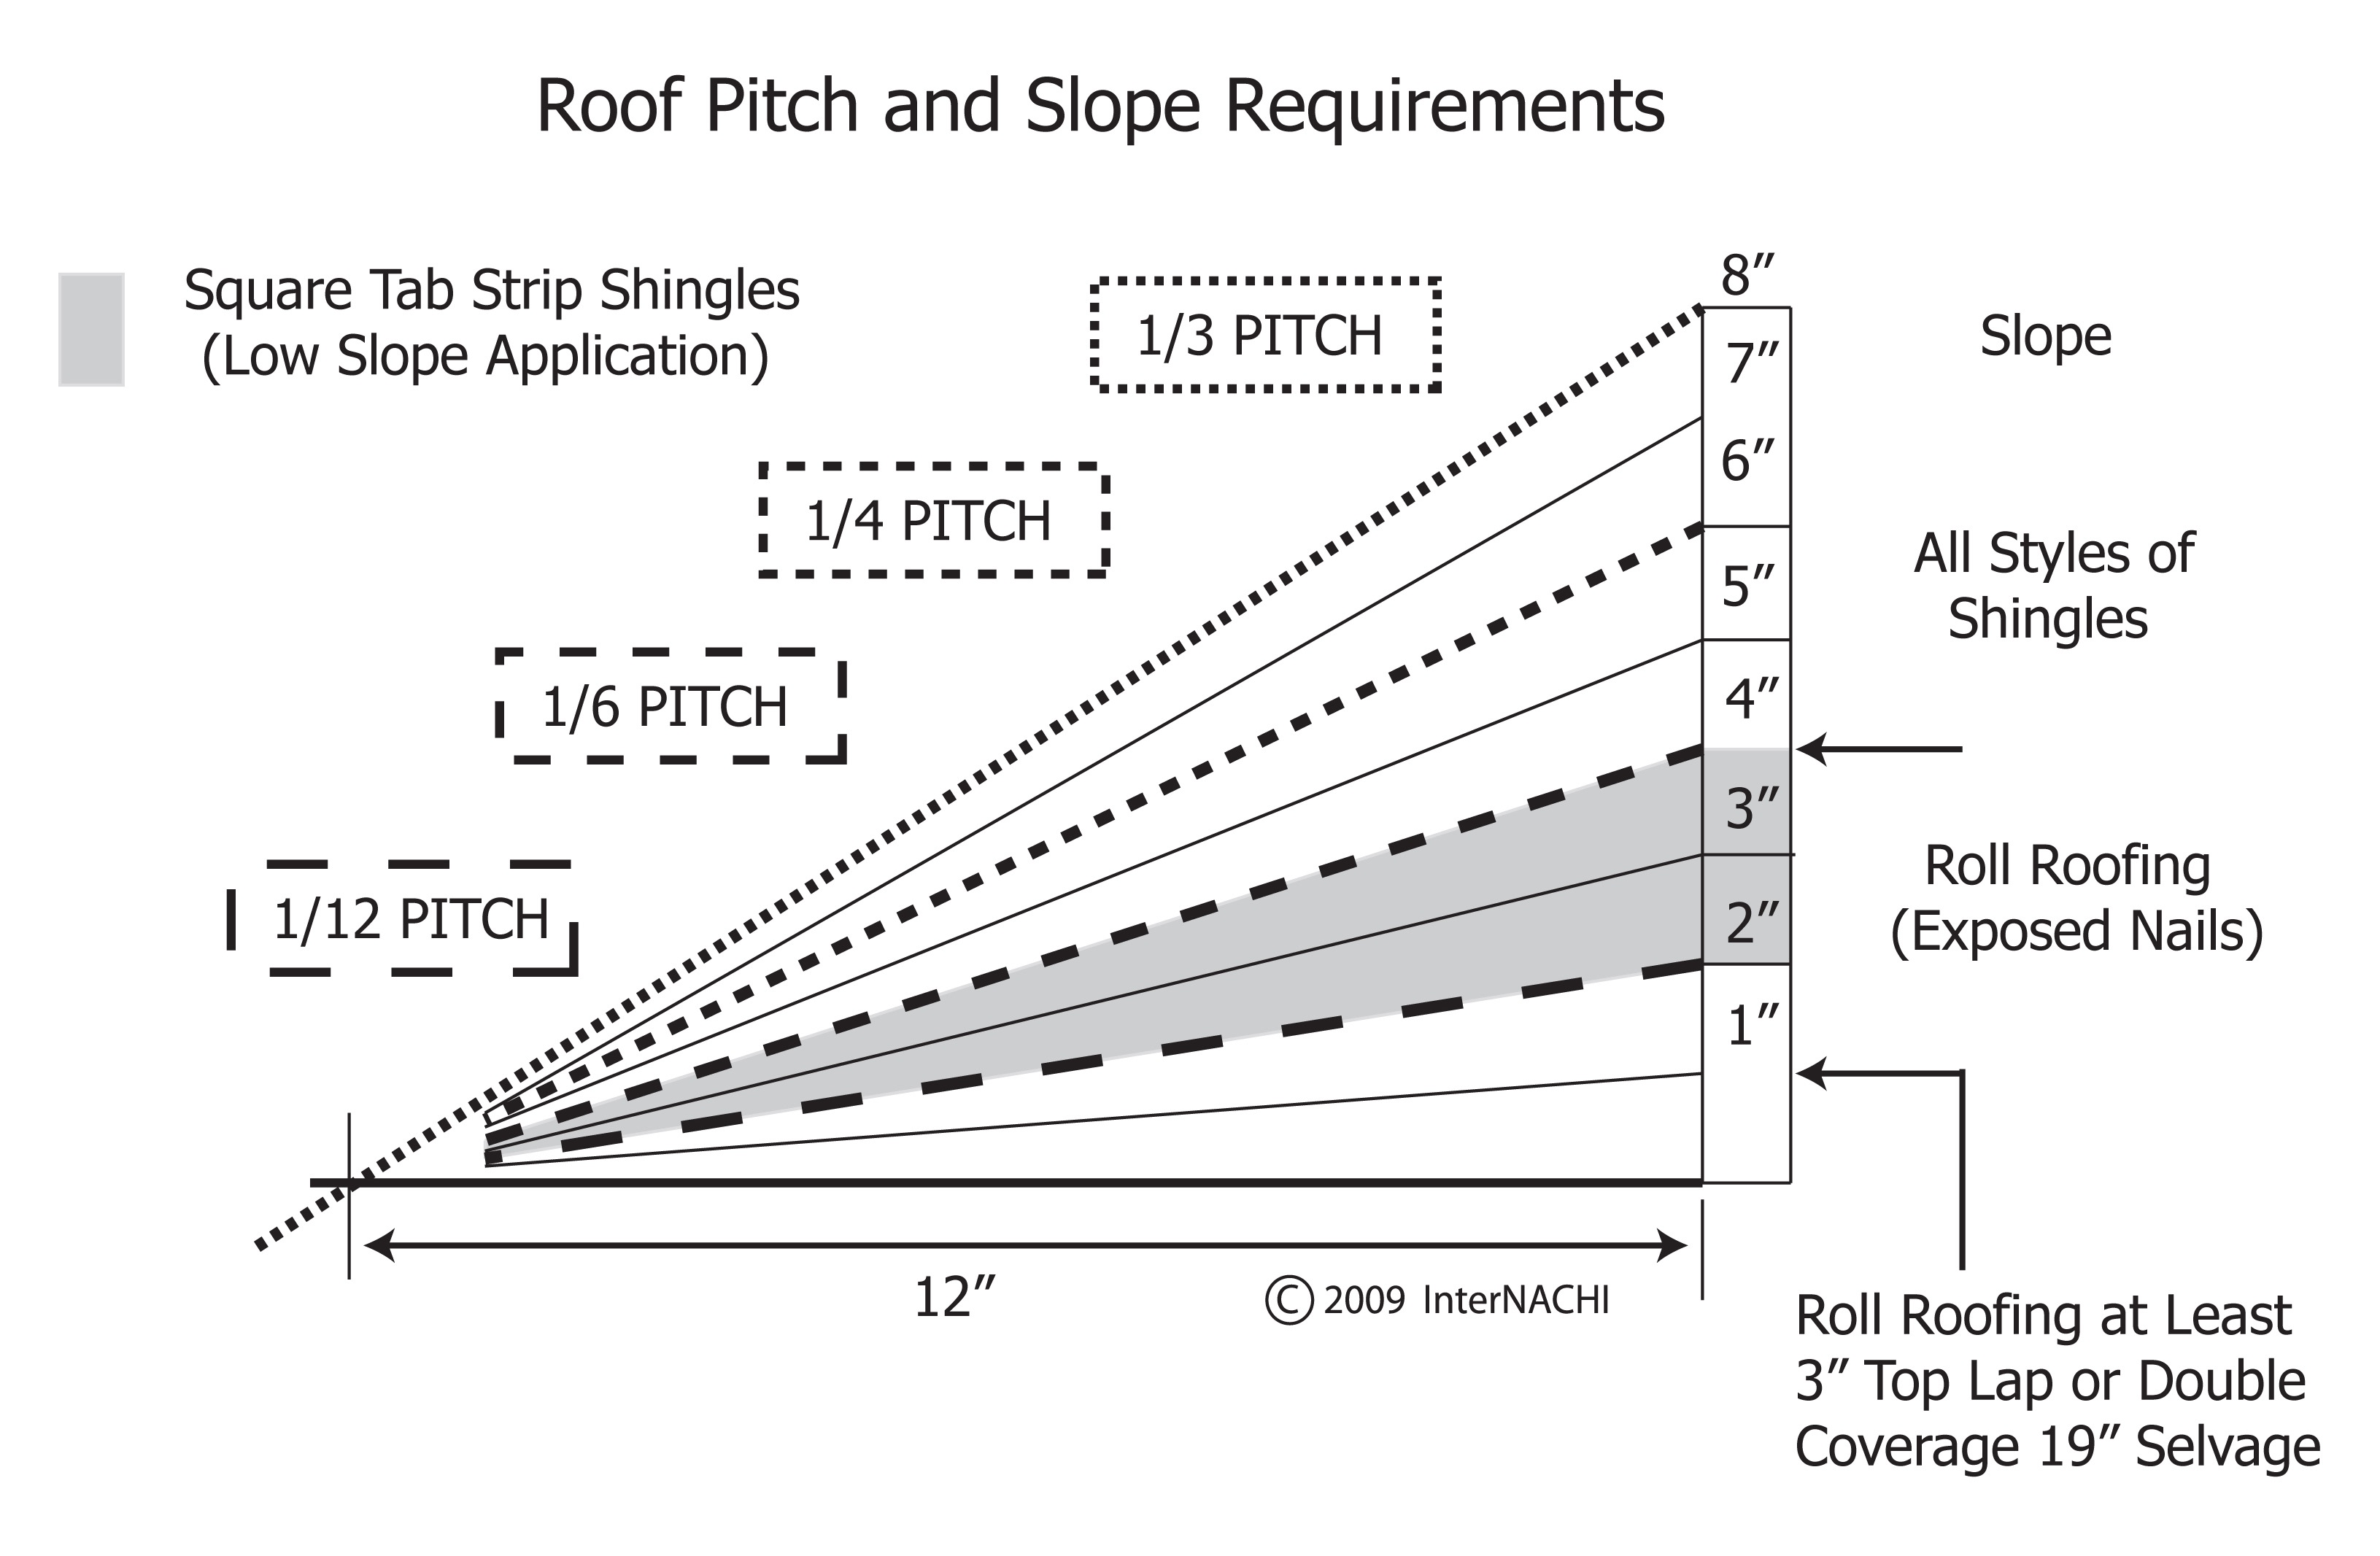 Roof pitch and slope requirements.